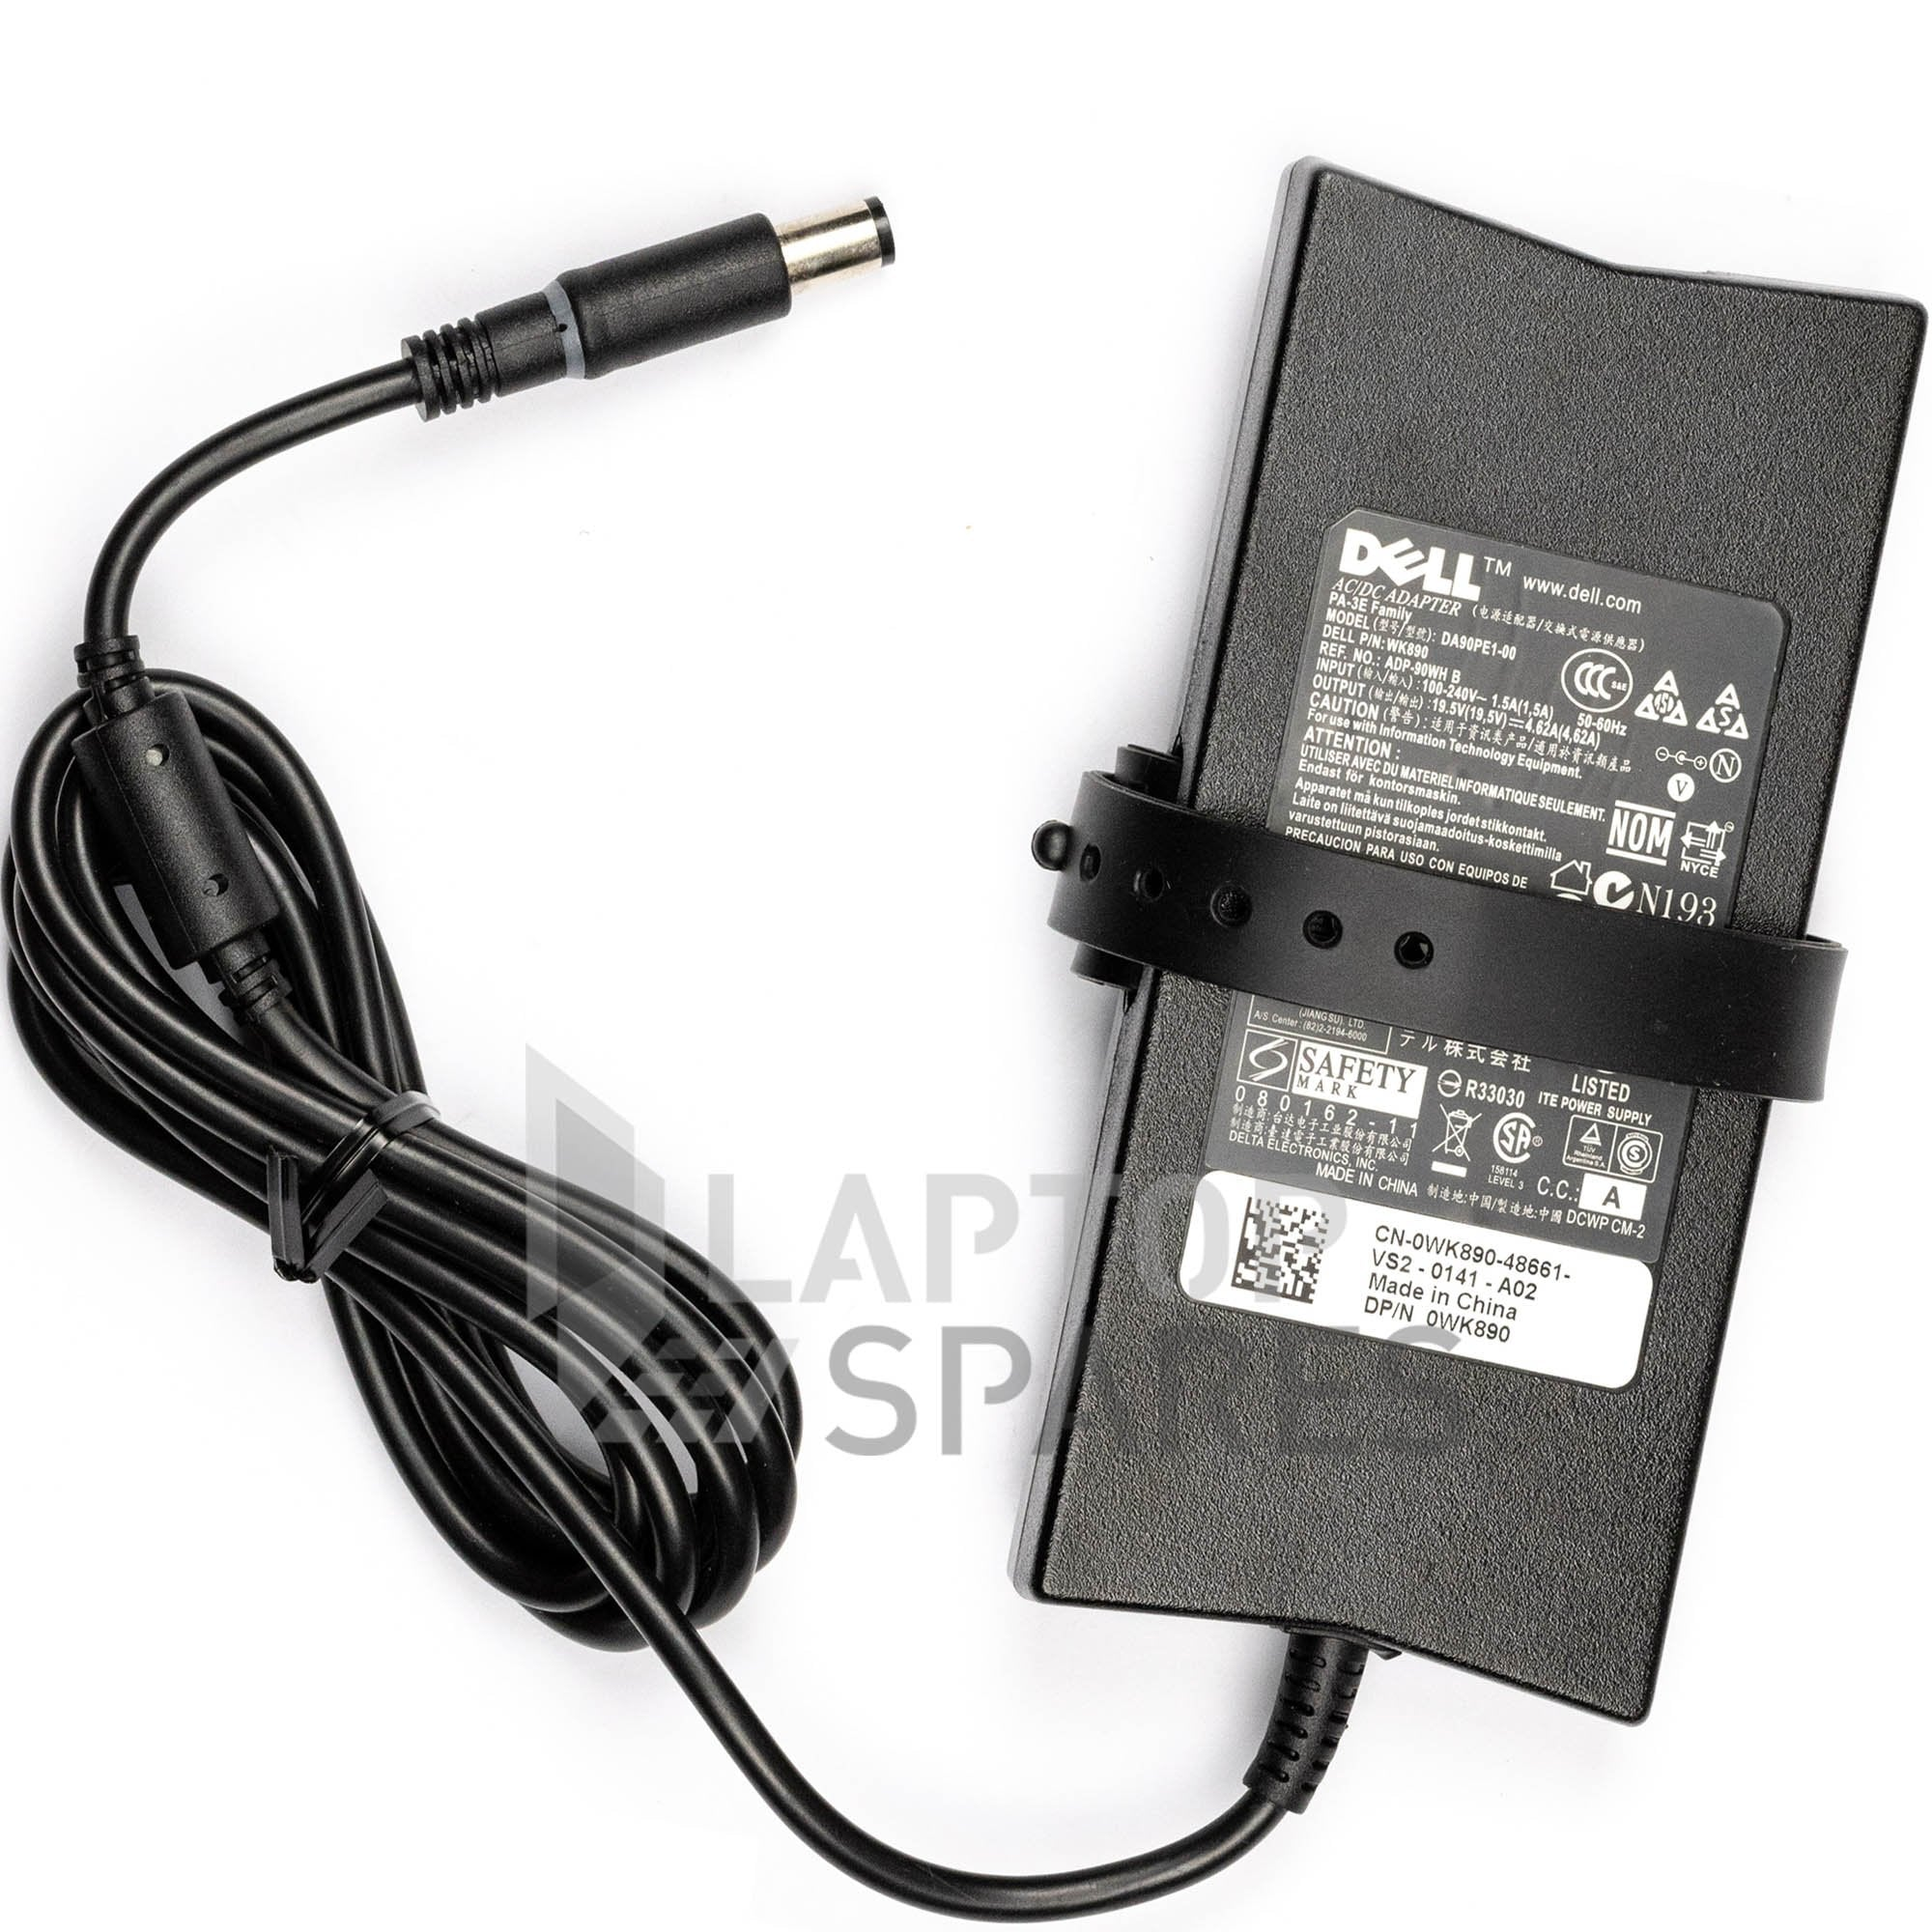 Dell Inspiron 17R Turbo P15E 7720 N7720 Laptop Slim AC Adapter Charger